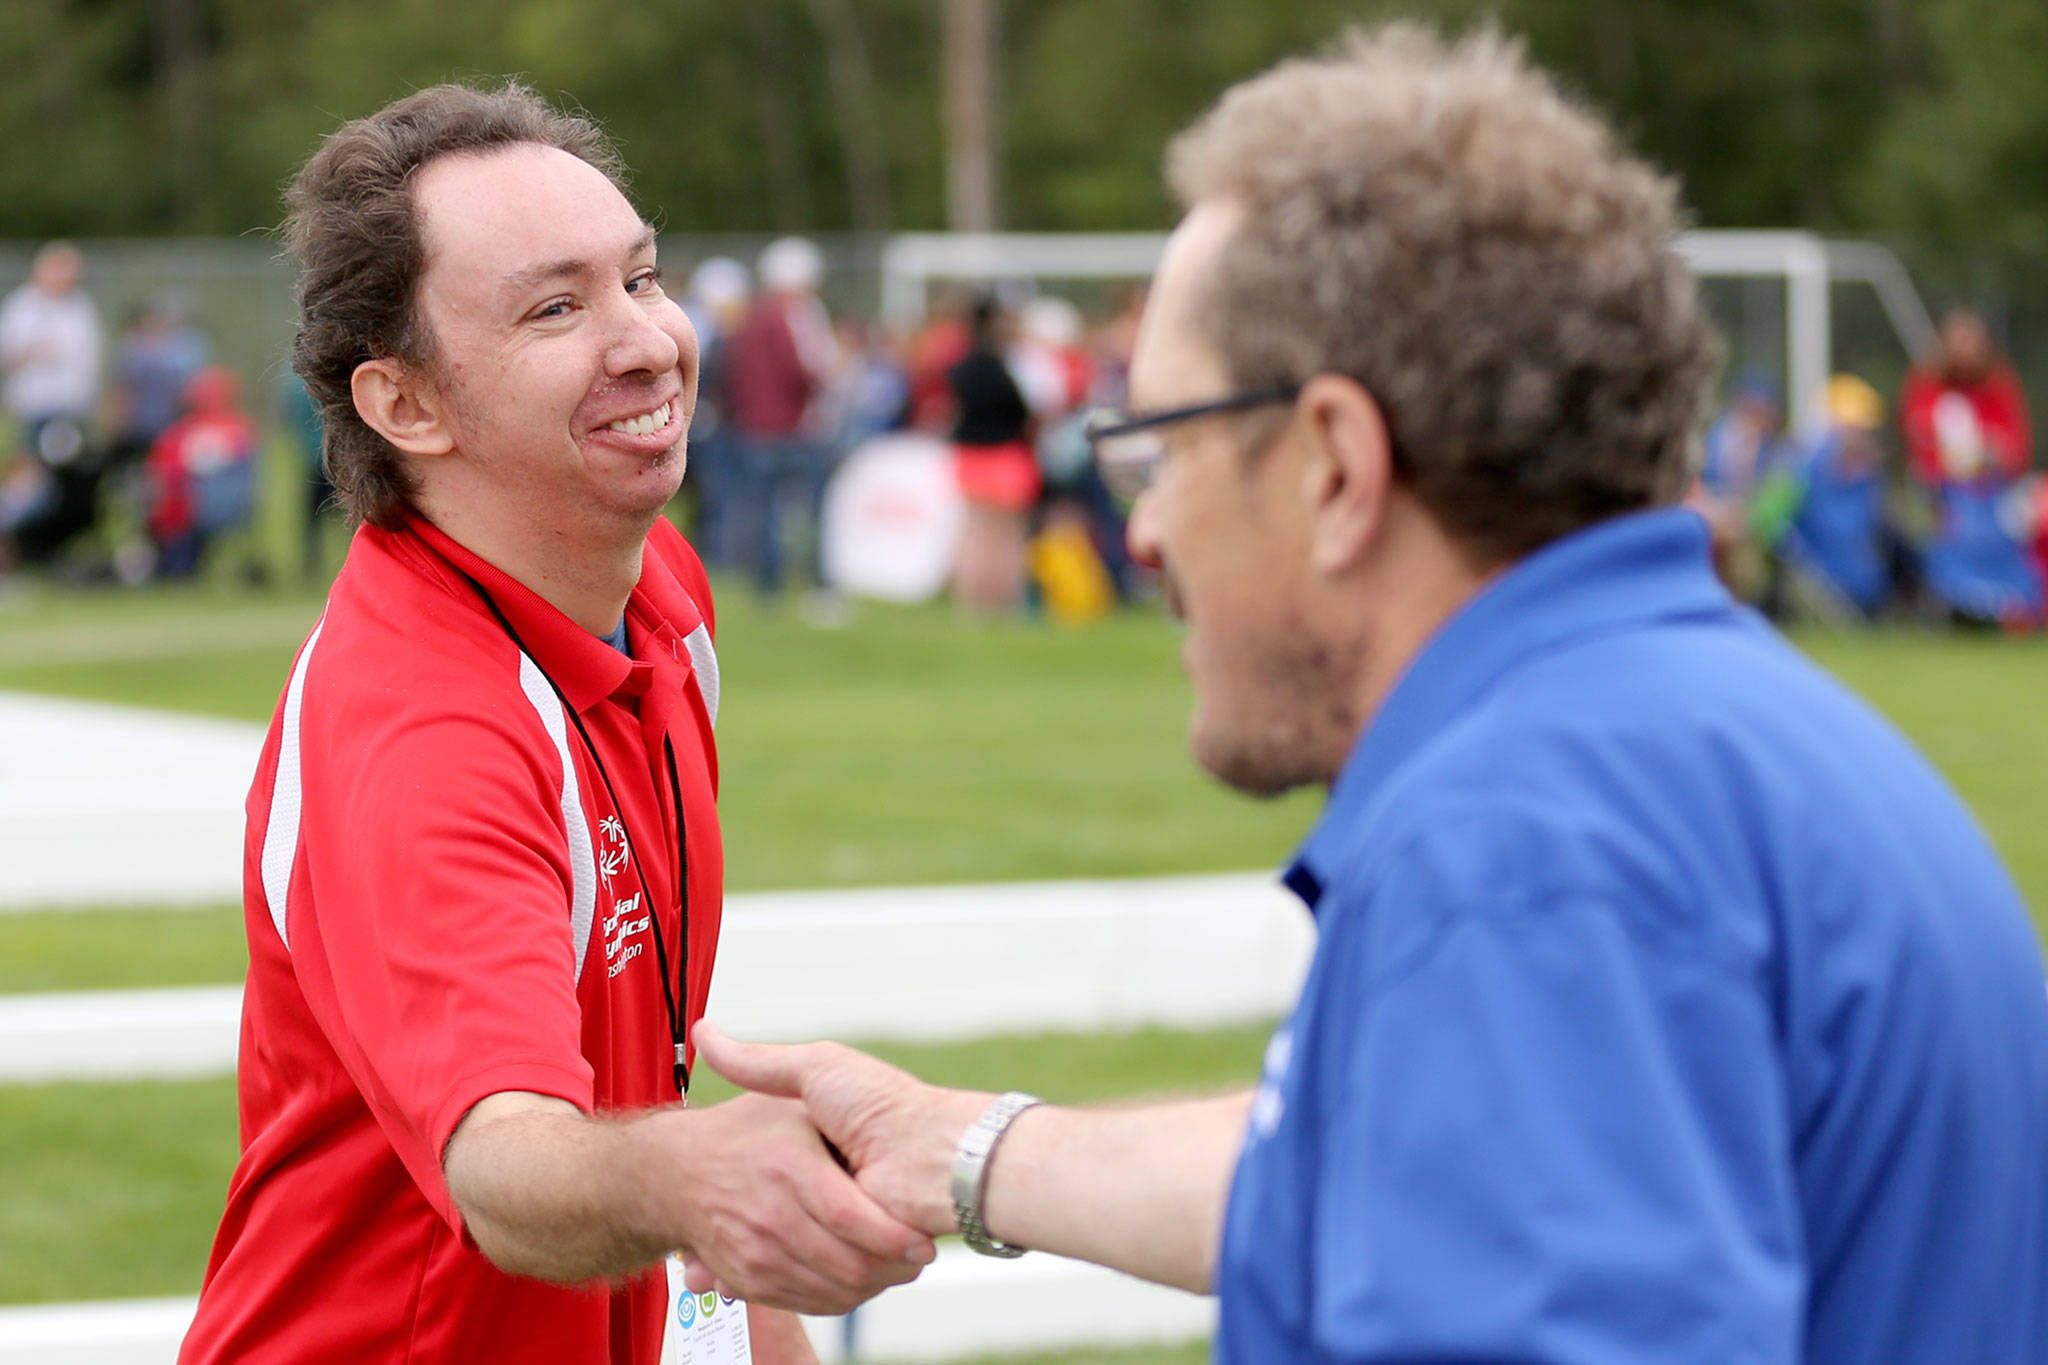 Scenes from the Bocce tournament during the Special Olympics Washington Summer State Games Saturday morning at Kasch Park in Everett on August 17, 2019. (Kevin Clark / The Herald)